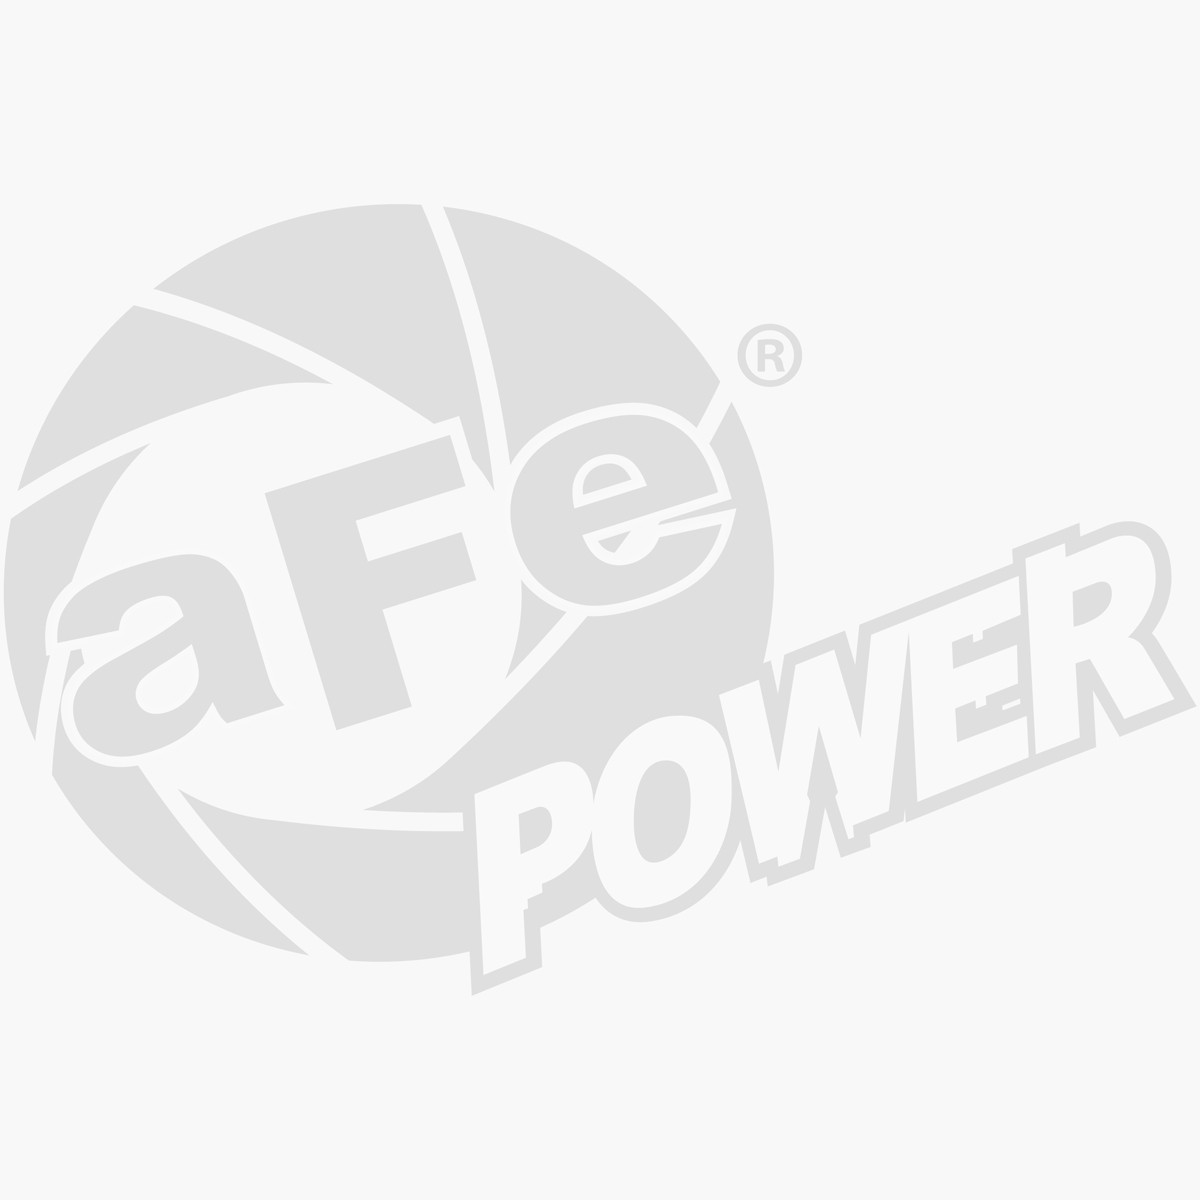 aFe POWER 40-10080 Window Cling, aFe Power Dealer: Medium